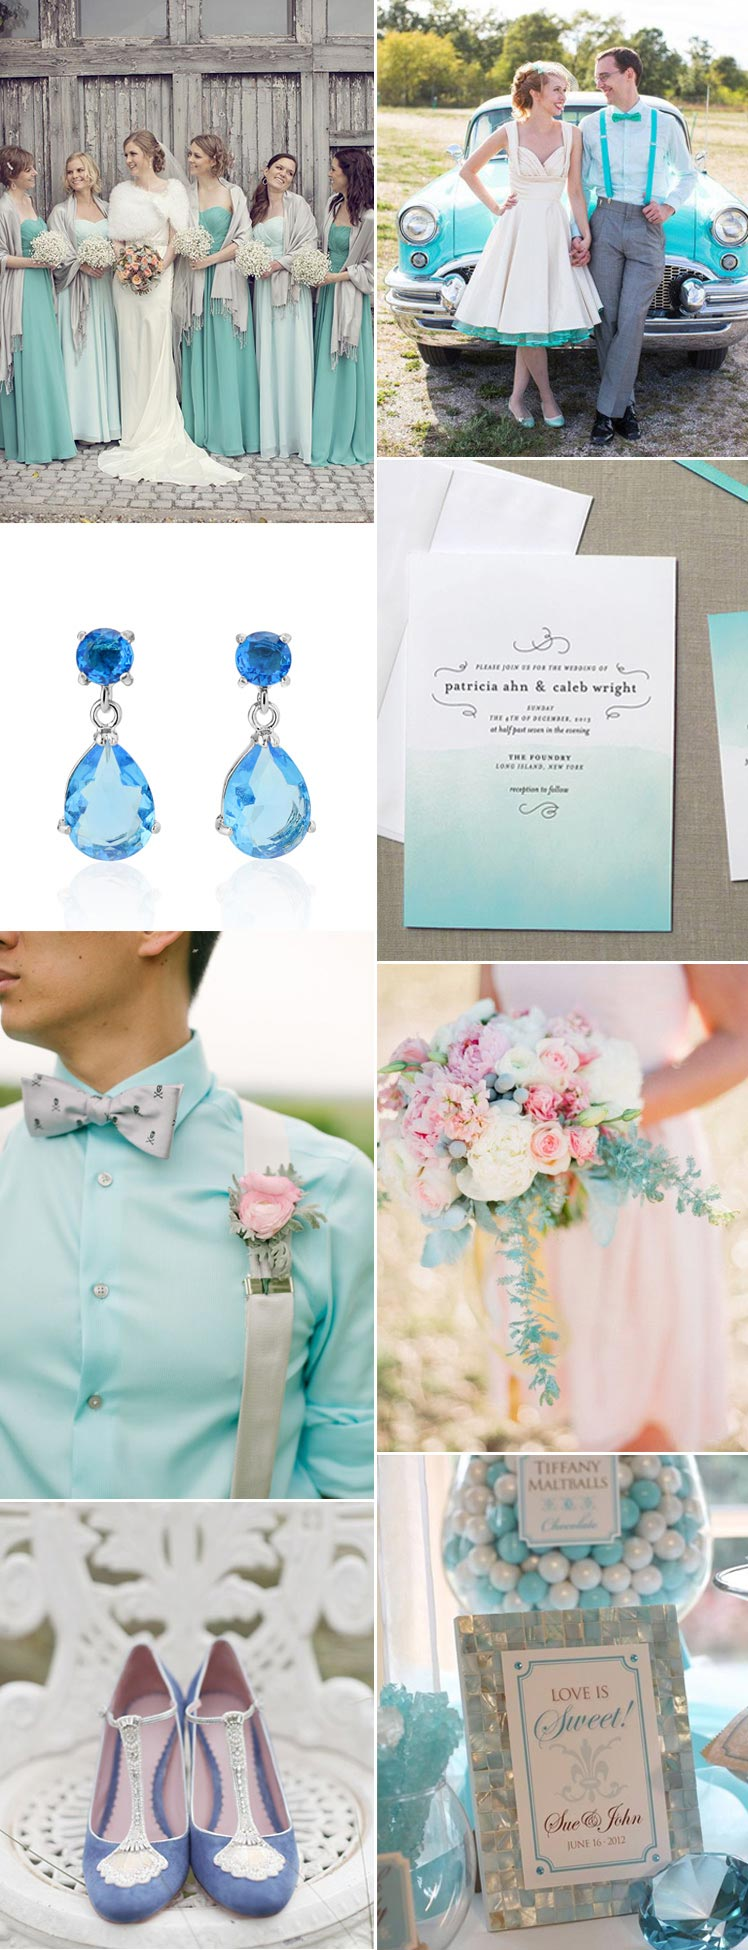 March's-aquamarine-wedding-inspiration